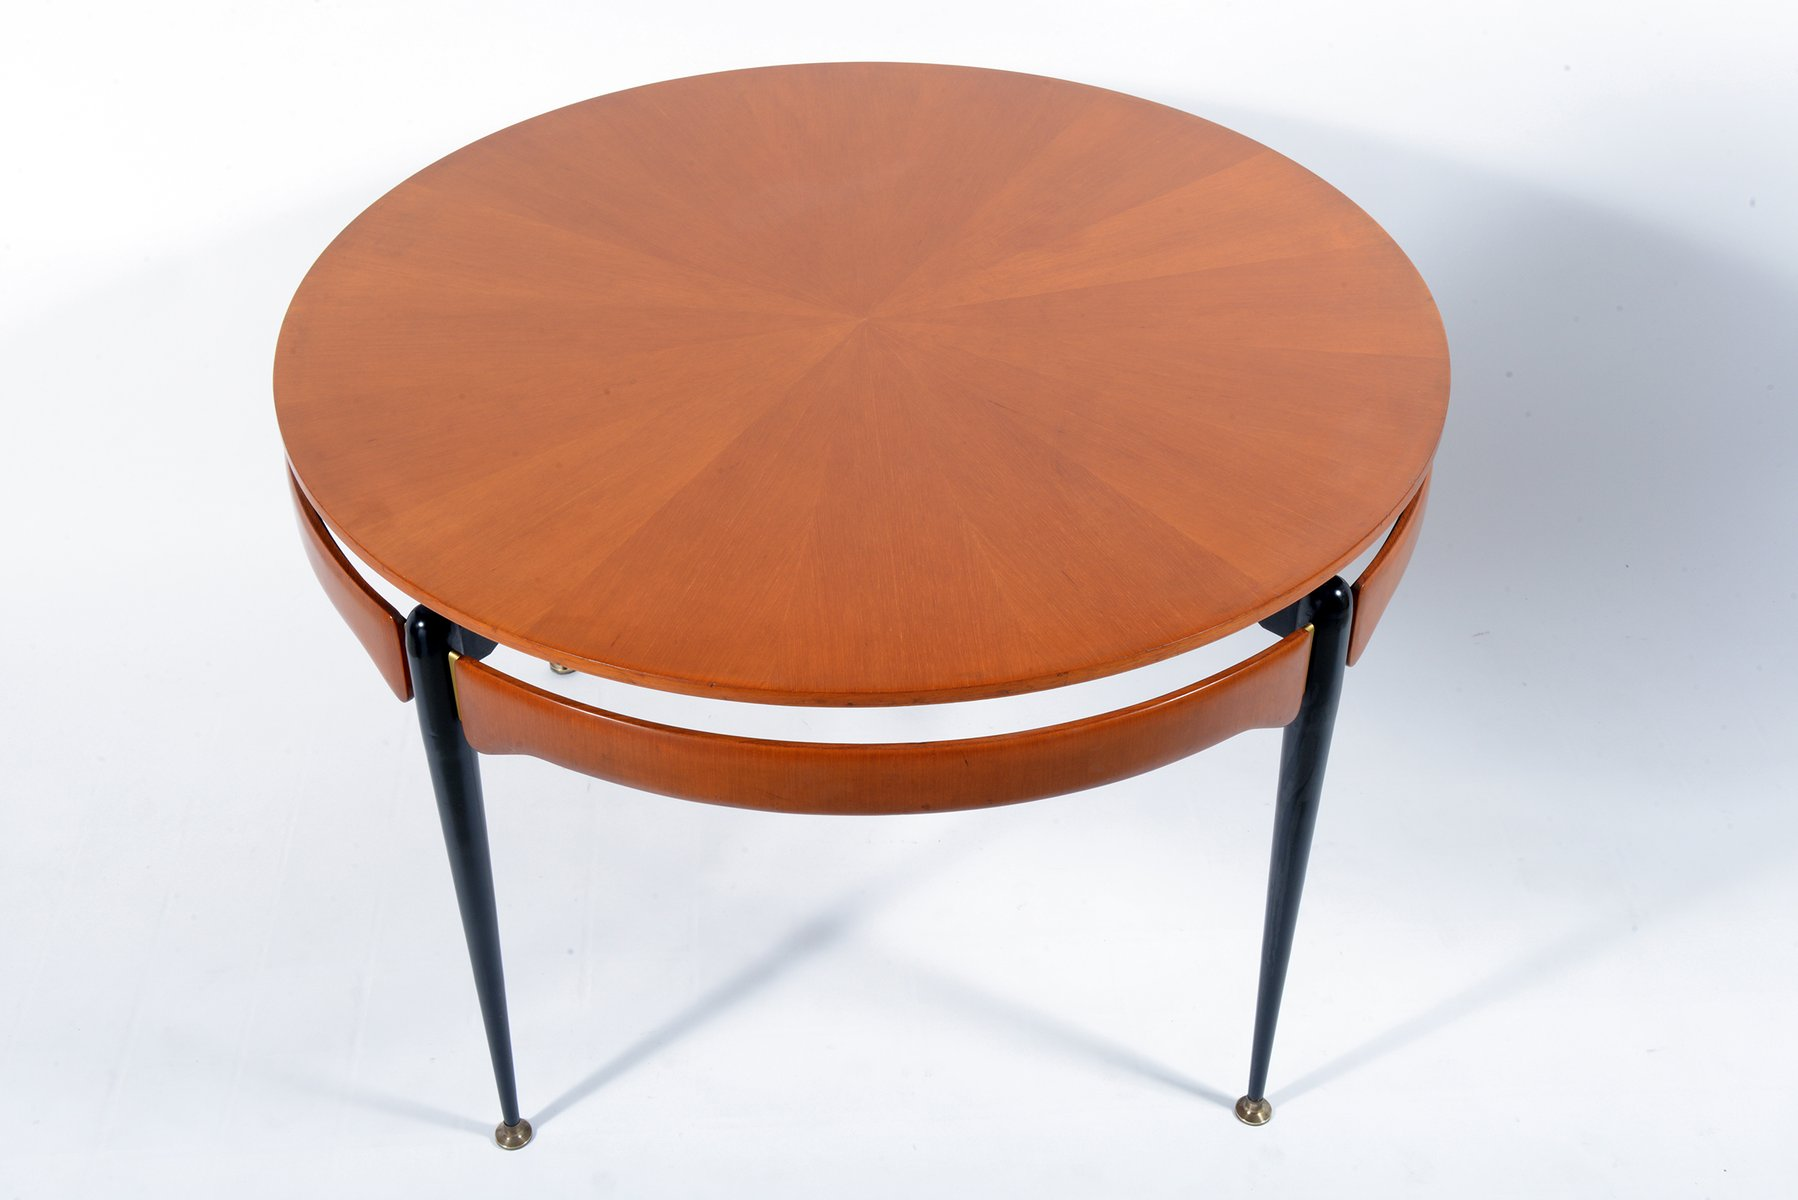 Round Walnut & Black Metal Table 1960s for sale at Pamono